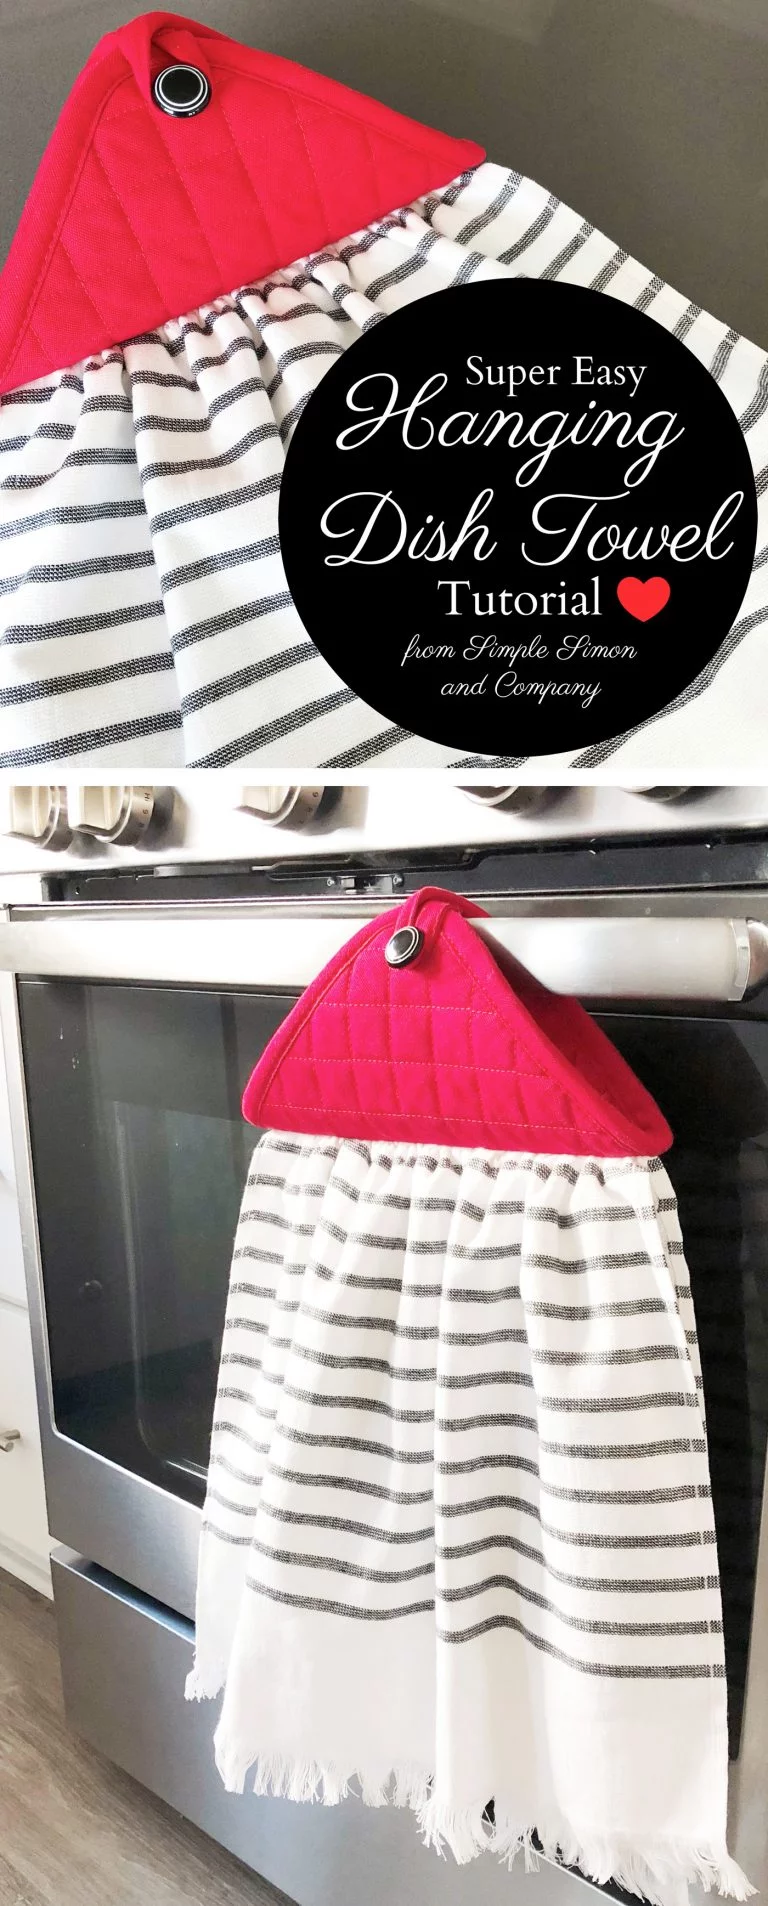 Farmhouse Style Hanging Kitchen Towel Tutorial #dishtowels